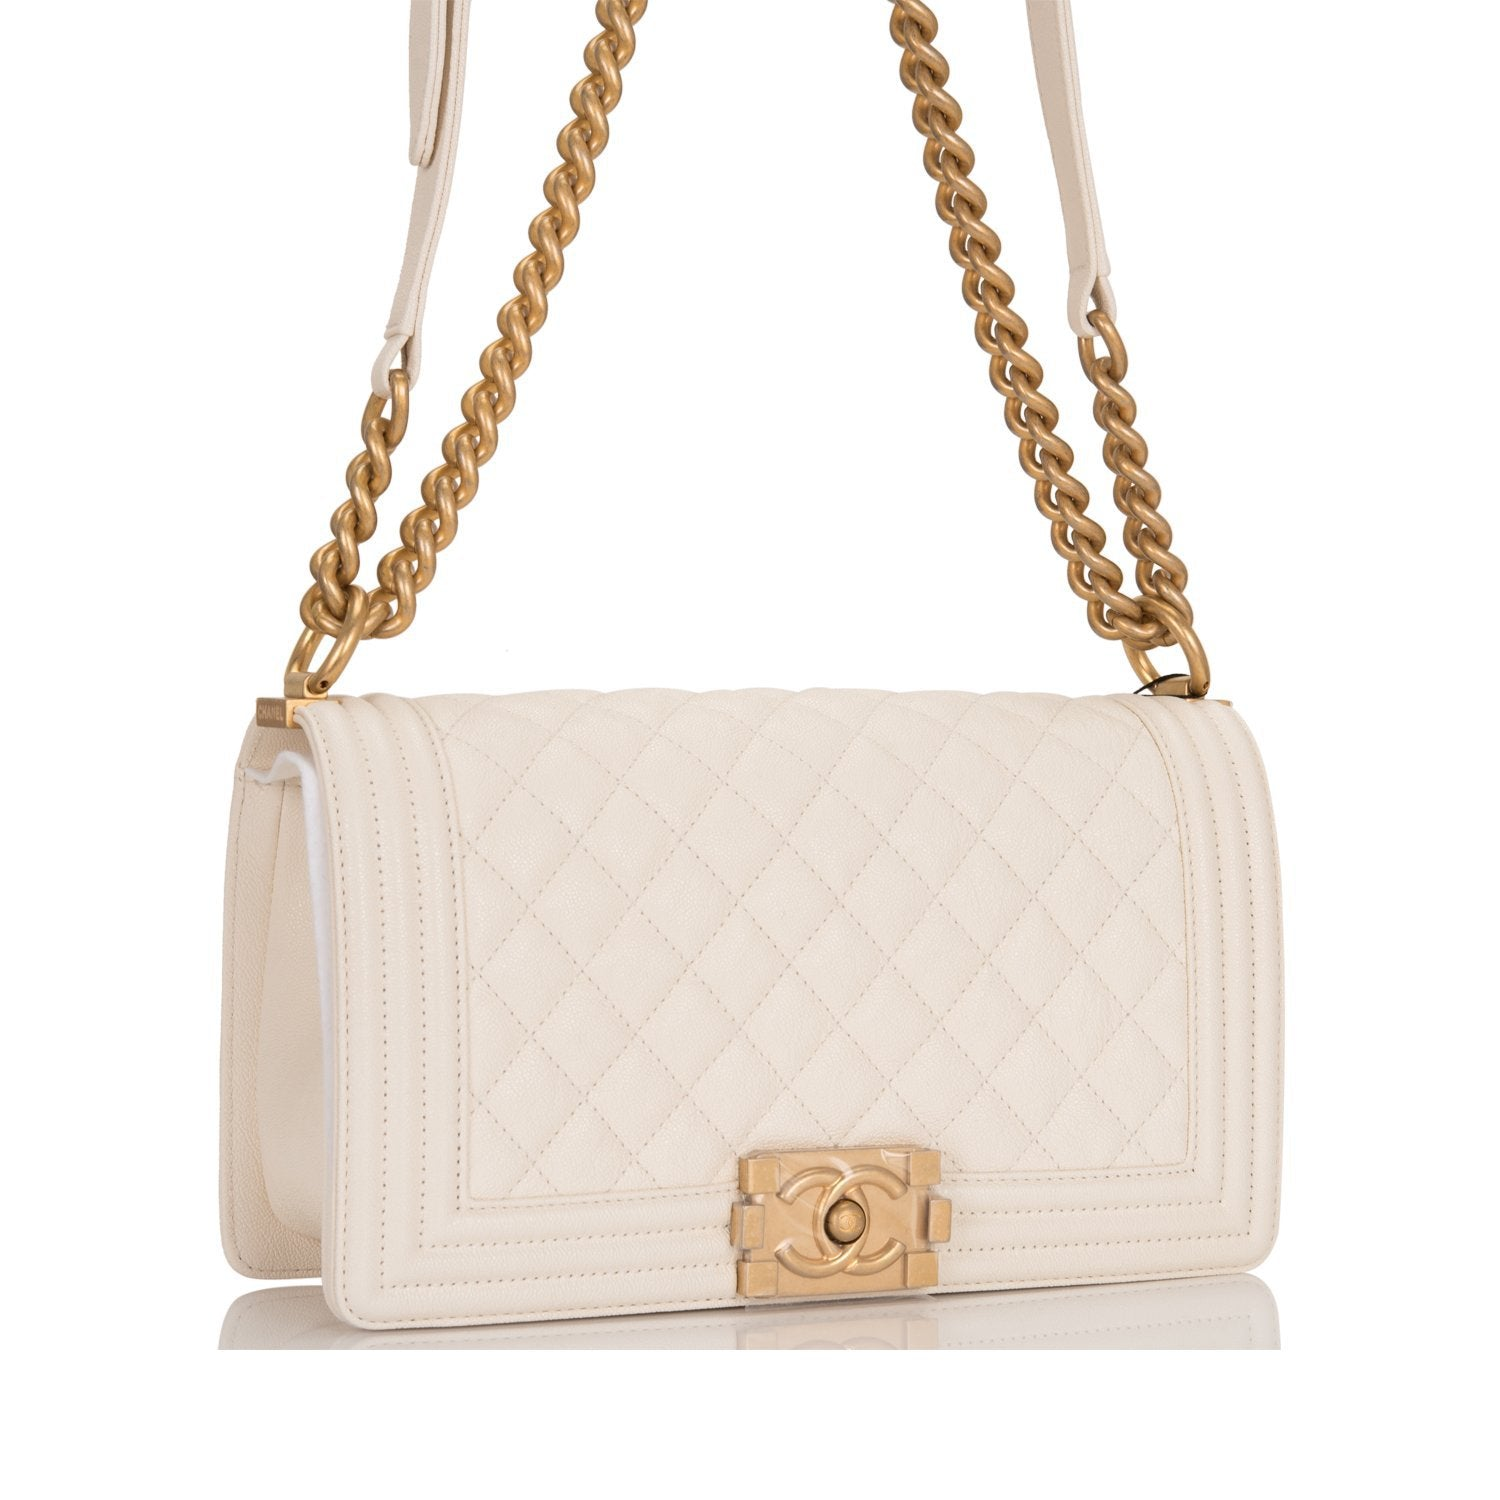 fd037842a7d2 Chanel White Quilted Caviar Medium Boy Bag – Madison Avenue Couture